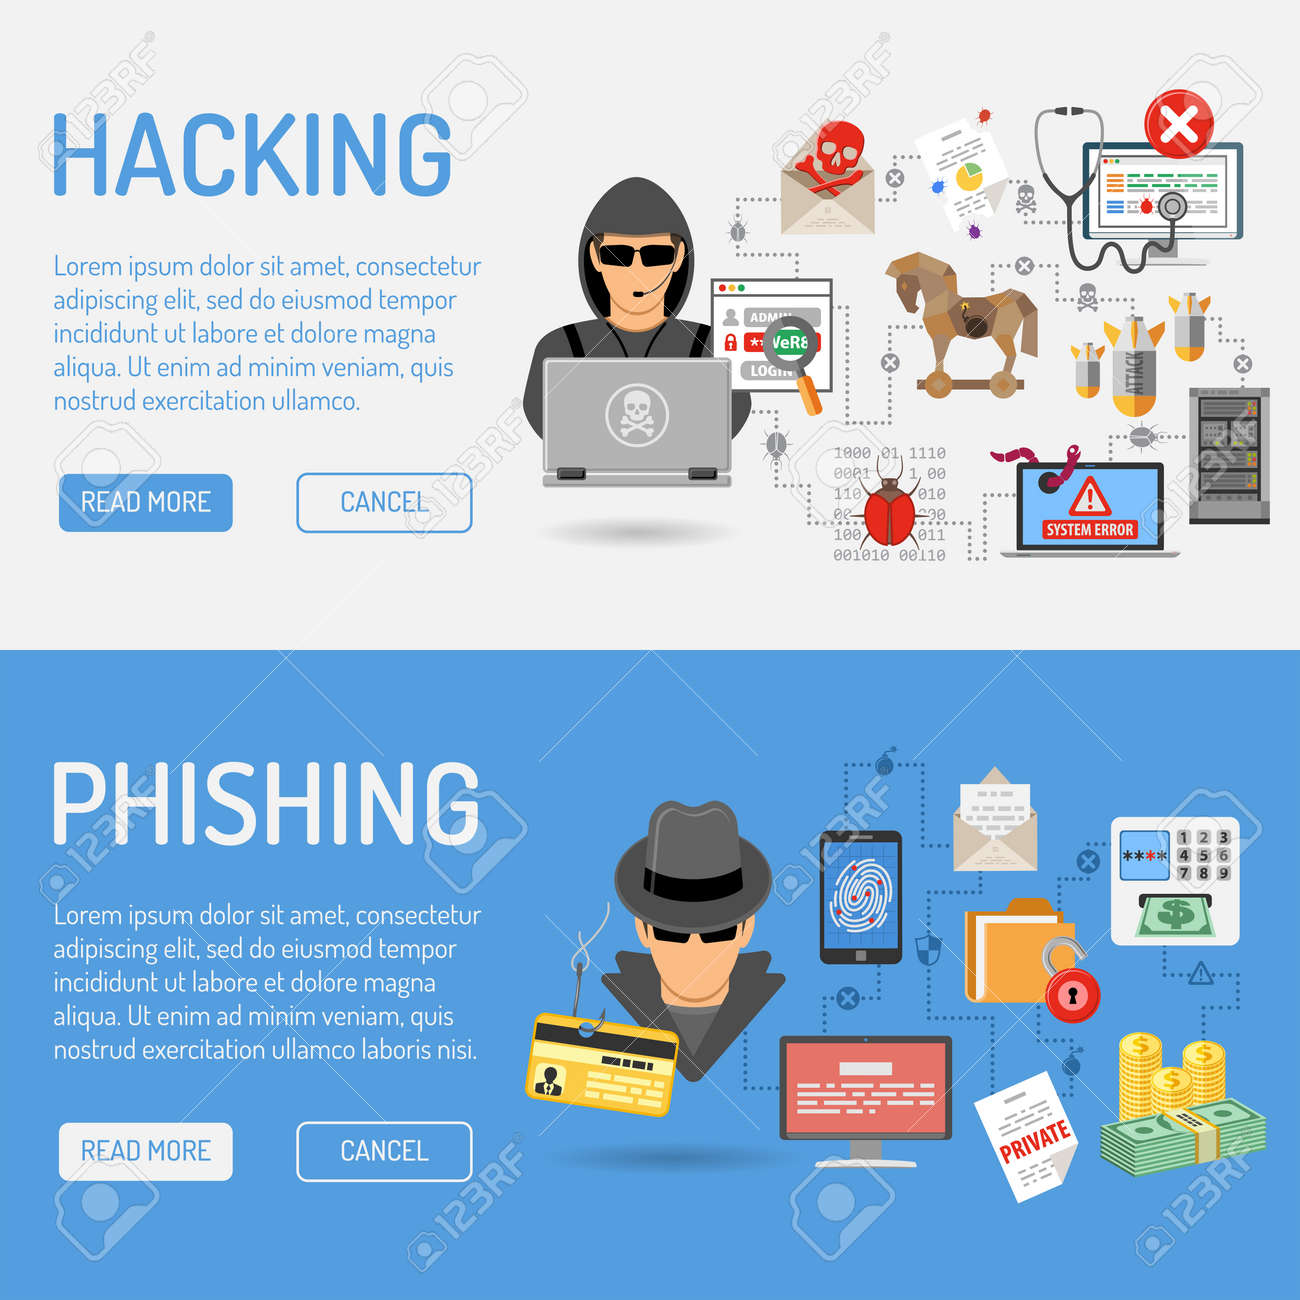 Cyber Crime Banners for Flyer, Poster, Web Site, Printing Advertising Like Hacker and Social Engineering. - 54413313